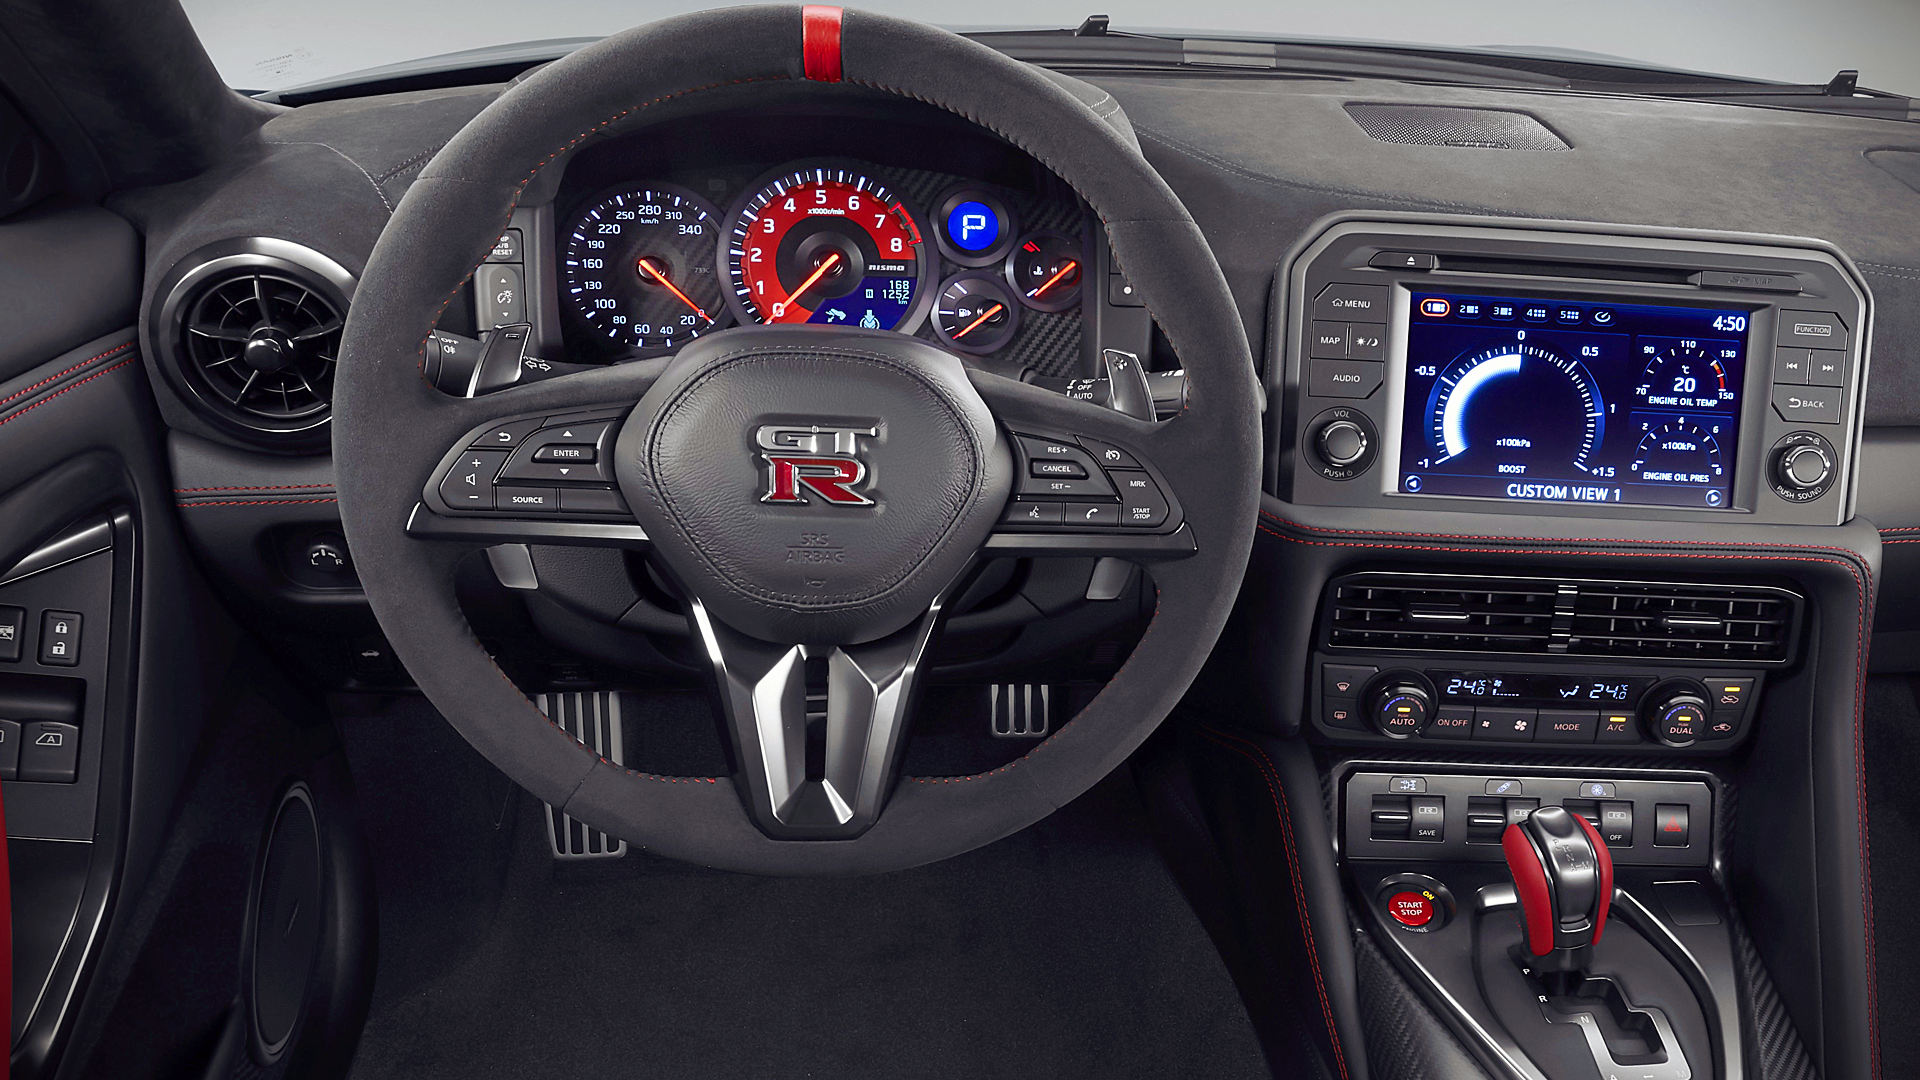 2020 Nissan GTR Interior Images